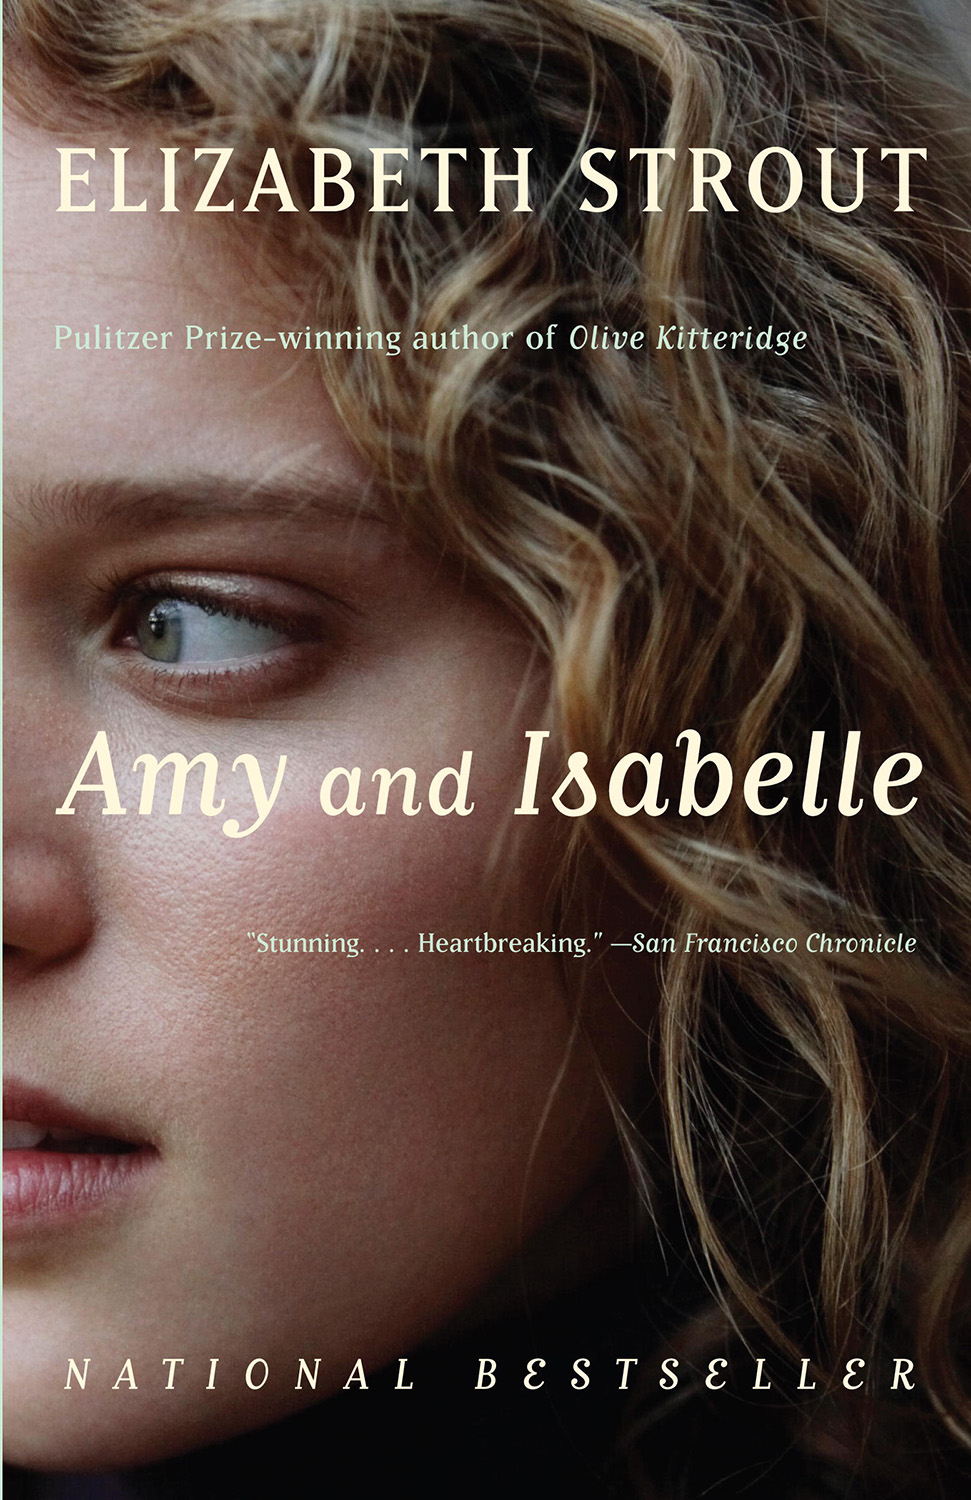 Book cover of Amy and Isabelle by Elizabeth Strout. Review by Allie Cresswell allie-cresswell.com